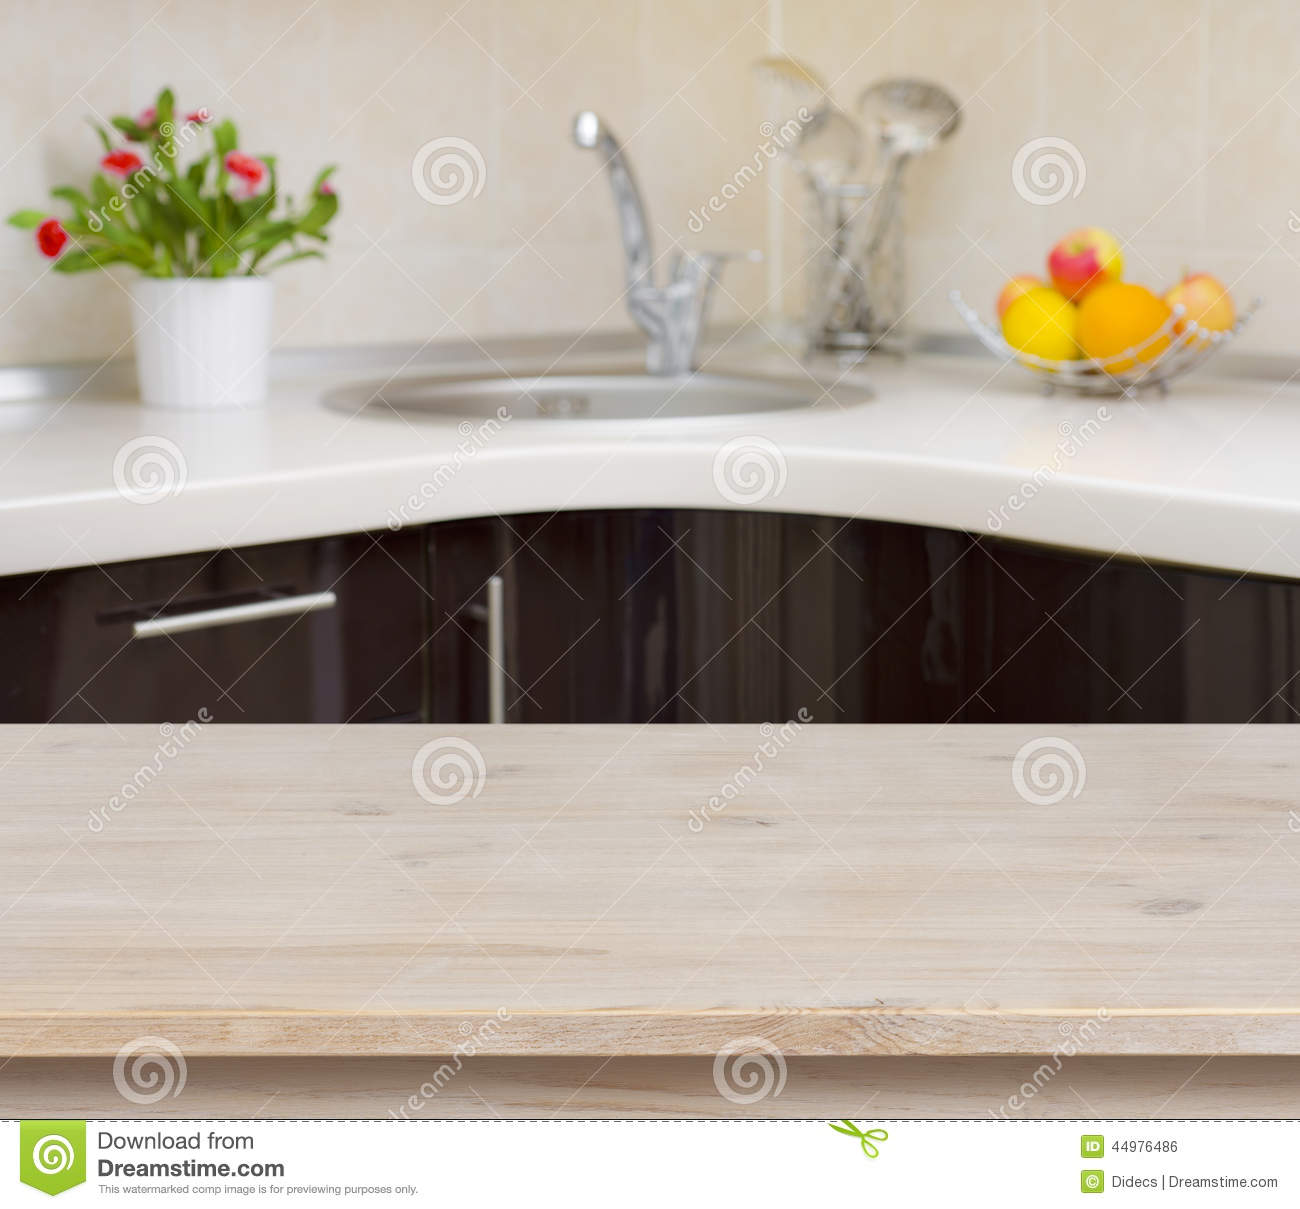 3 hole kitchen faucet ventless hood wooden table on interior background stock ...